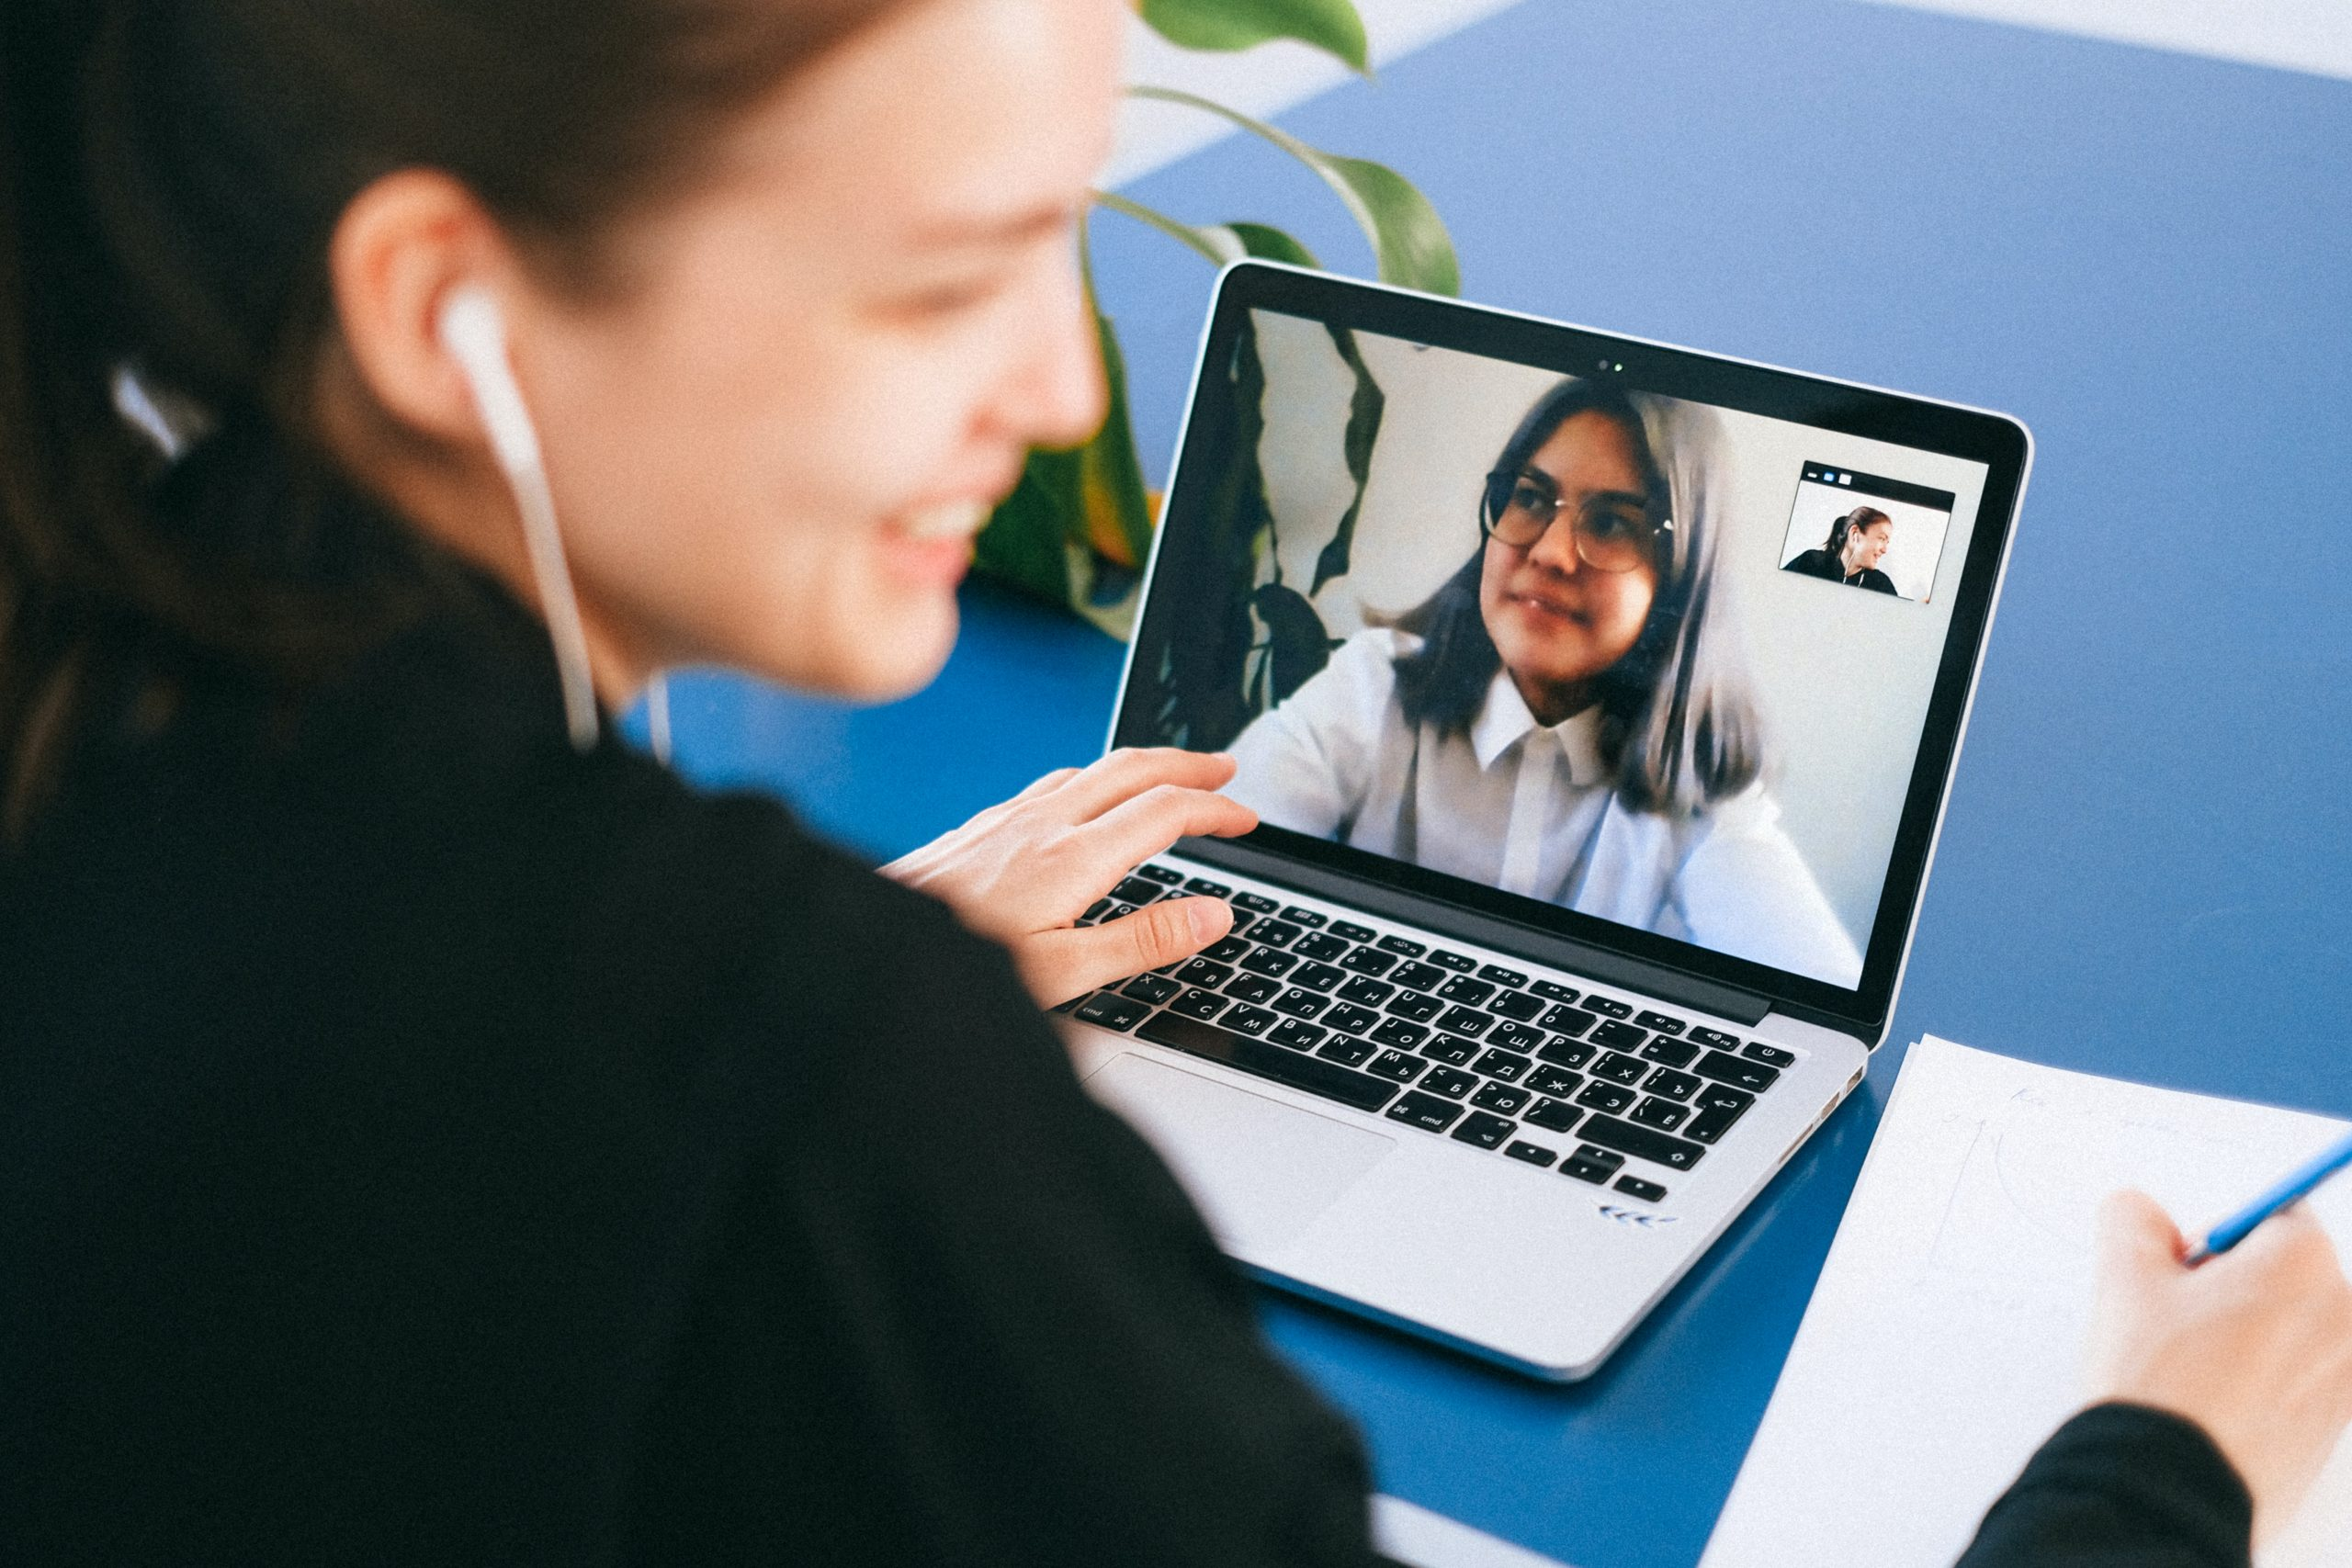 Skype video interview